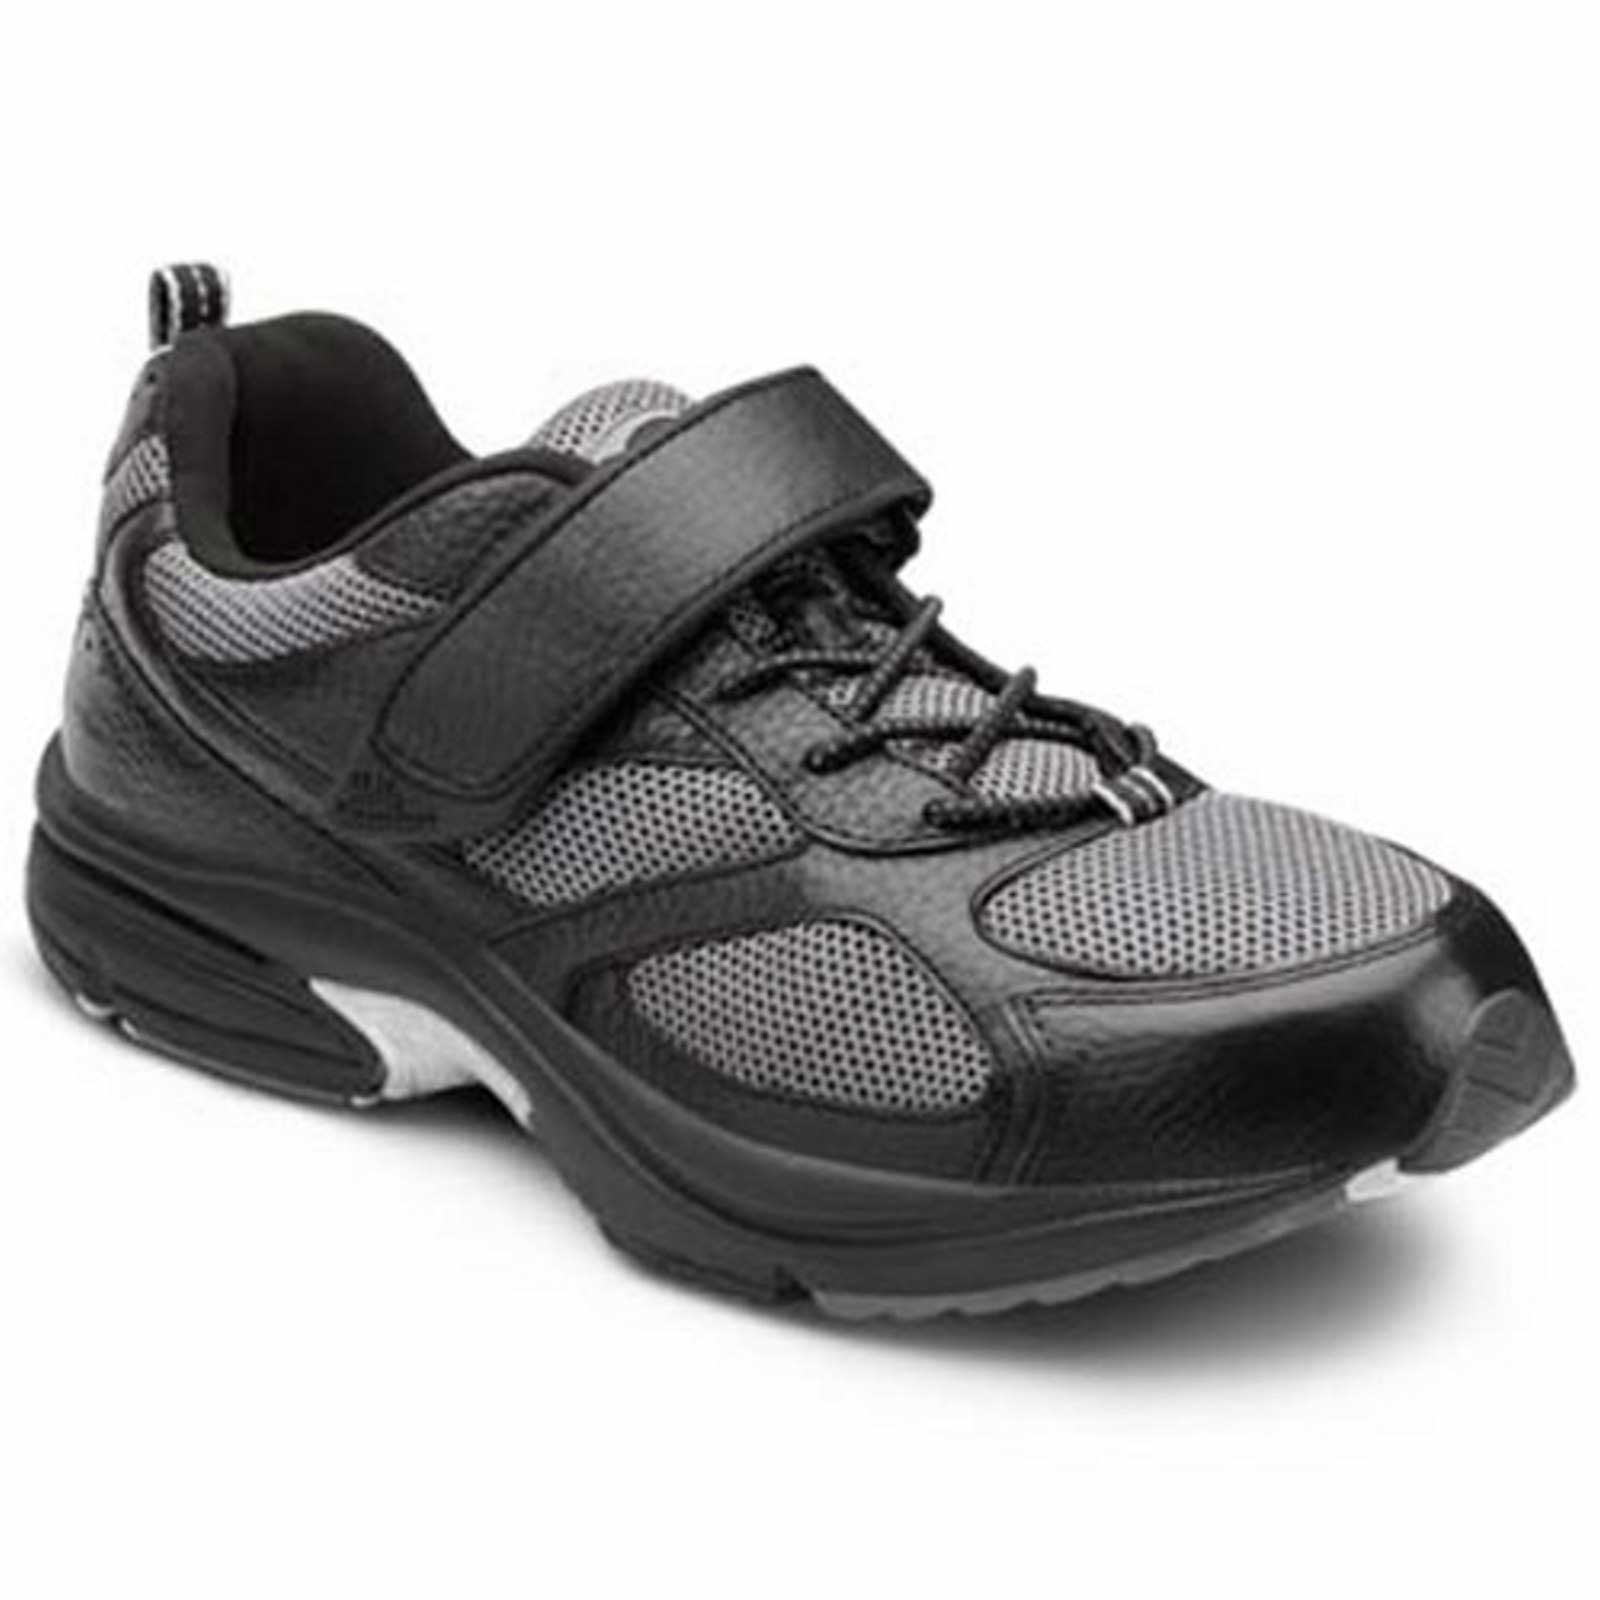 Dr. Comfort Shoes Endurance - Men's Comfort Therapeutic Diabetic Shoe with Gel Plus Inserts - Athletic - Medium (B) - Extra Wide (4E) - Extra Depth for Orthotics